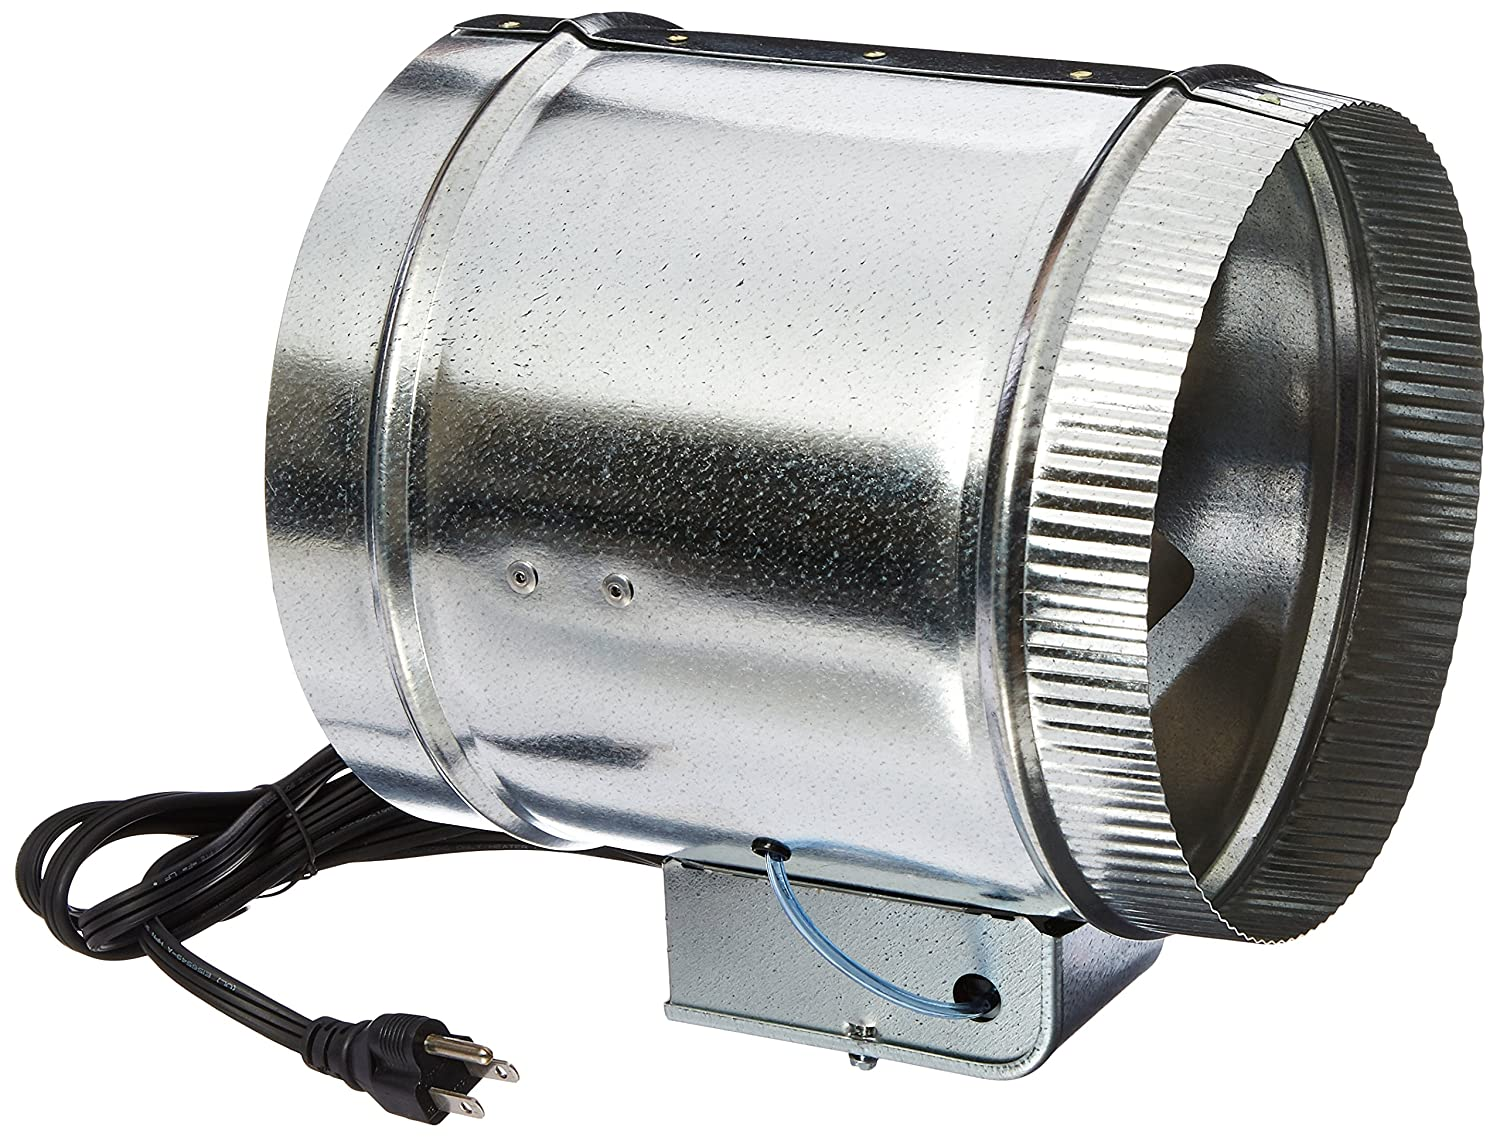 Tjernlund Ef 8auto Automatic Duct Booster Fan 8 Ducting Air Conditioning Fridge Hvac Custom Job Blower Motor Wiring Help Components Industrial Scientific